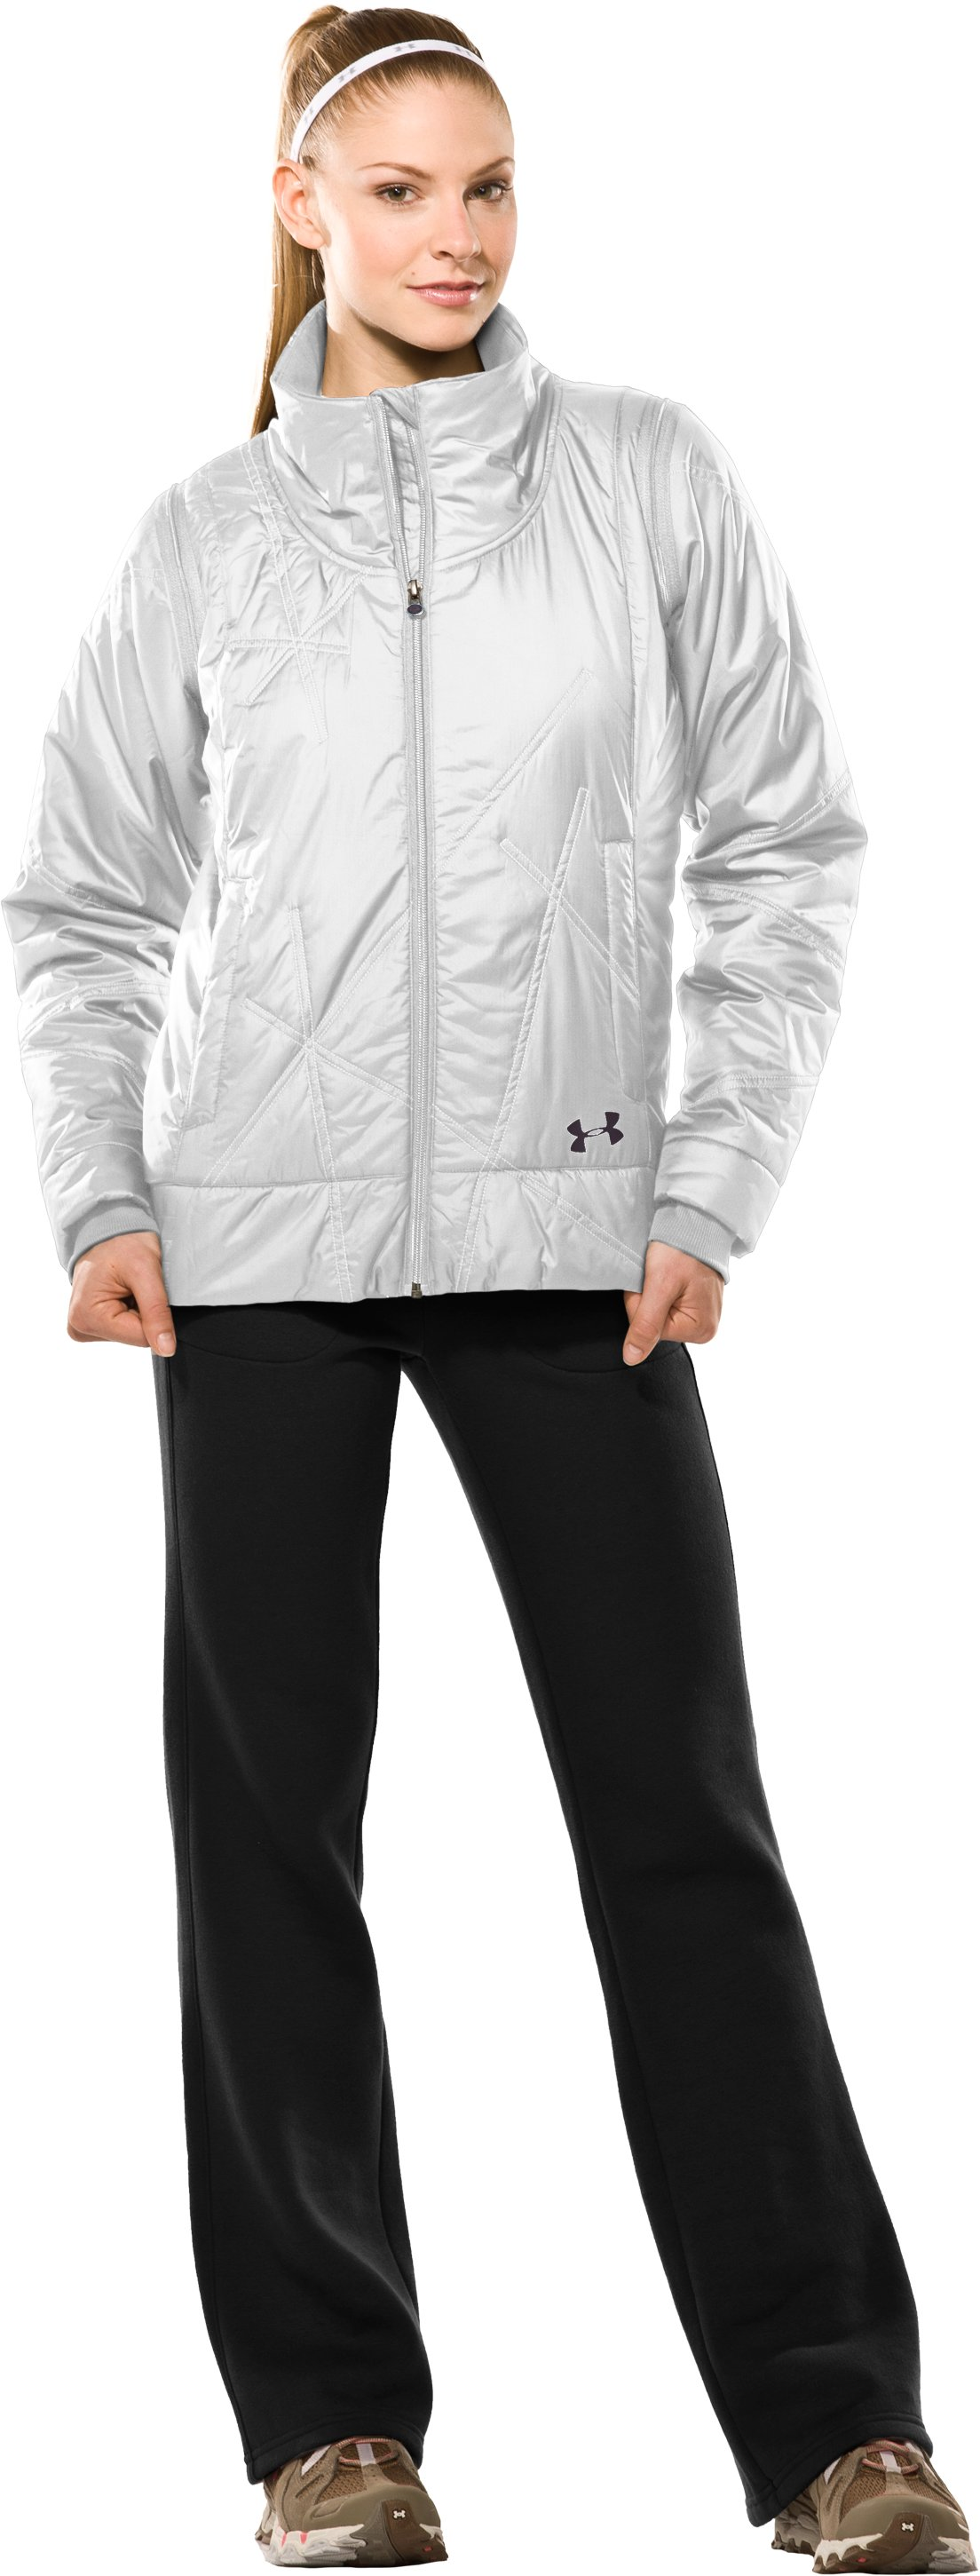 Women's Choice ArmourLoft® Jacket II, White